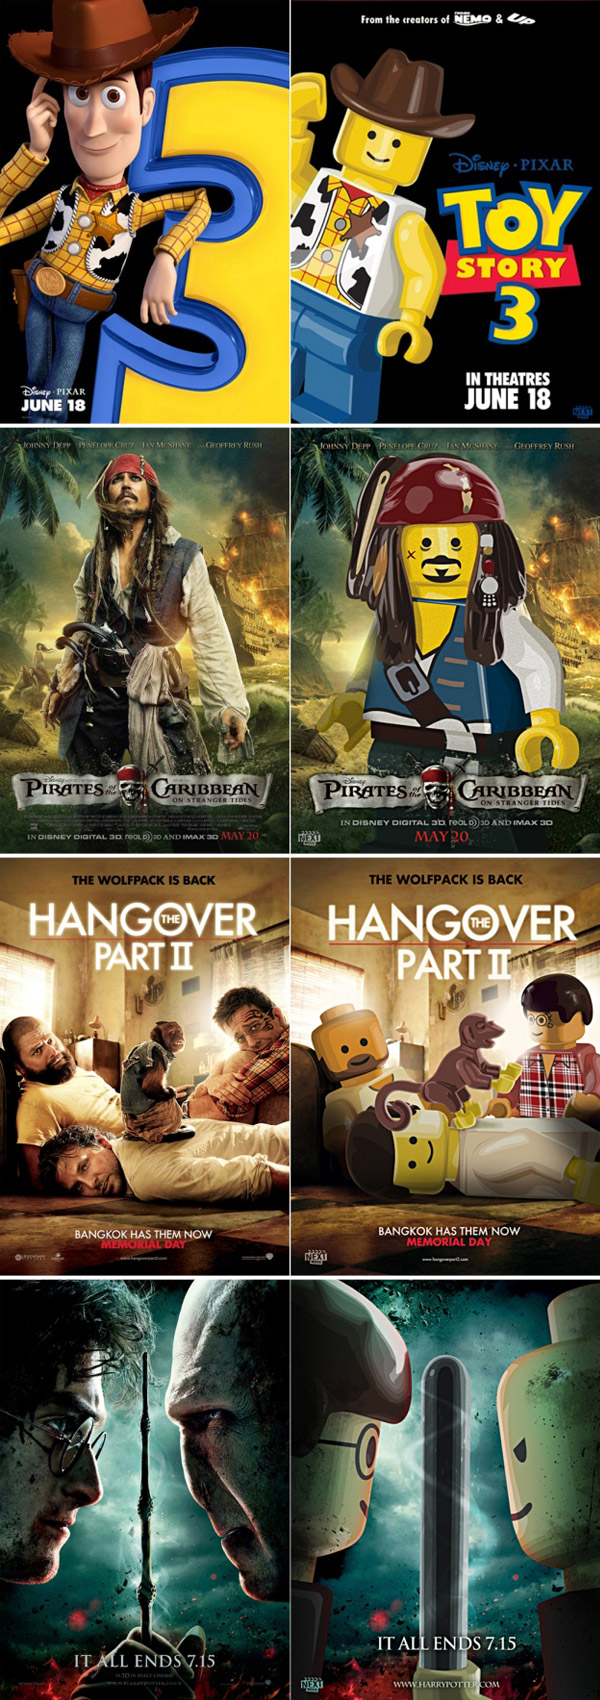 Lego movies posters